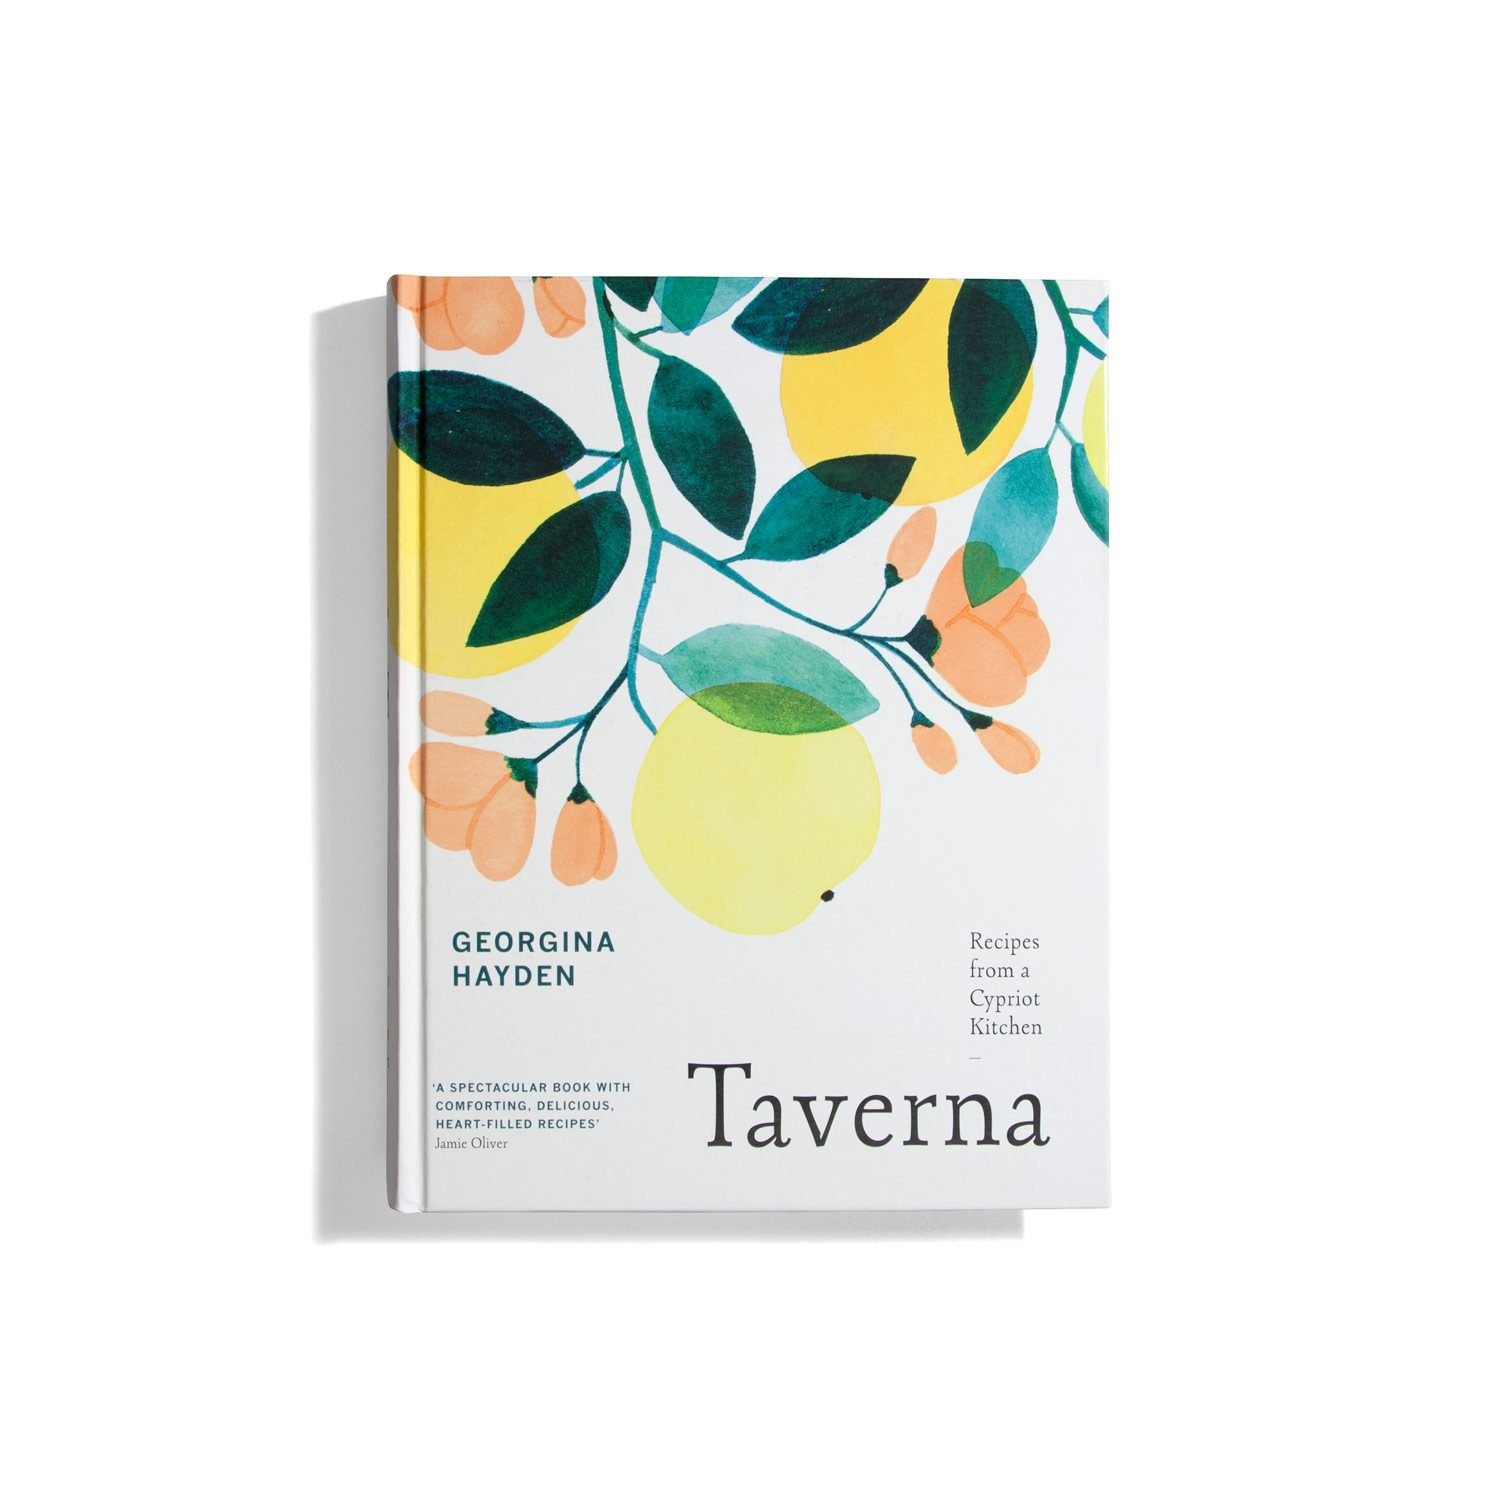 Taverna - Recipes from a Cypriot Kitchen